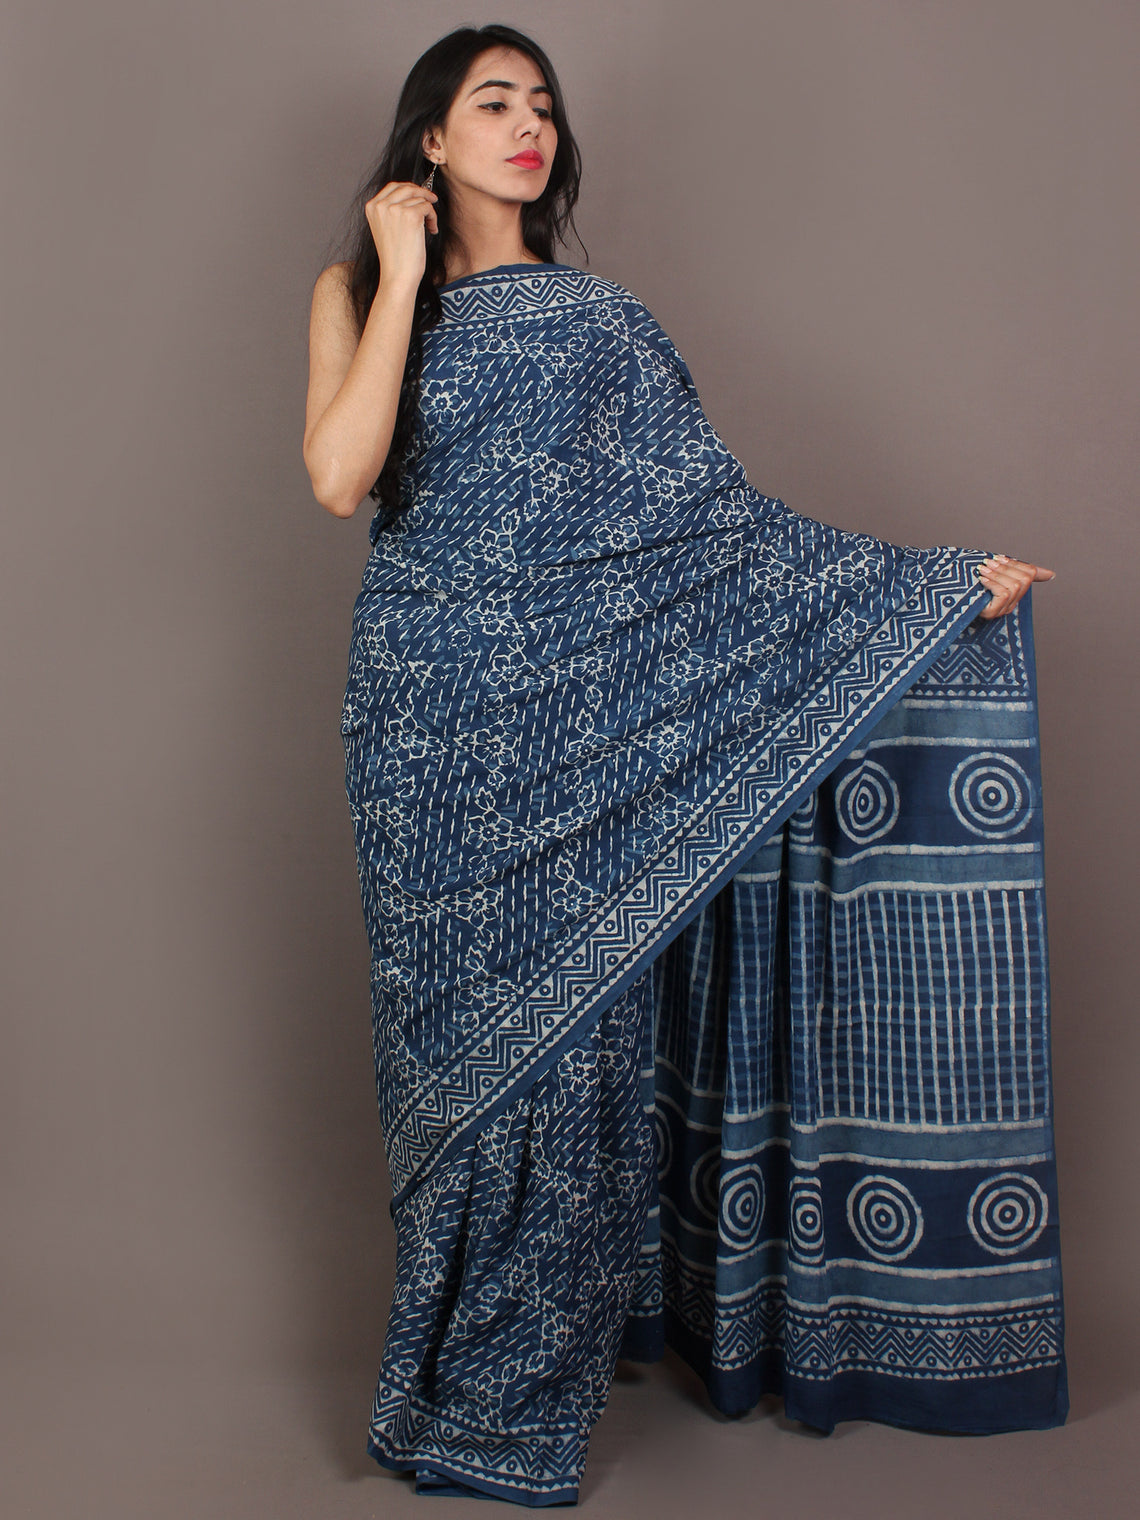 Indigo Ivory Hand Block Printed in Natural Colors Cotton Mul Saree - S031701096